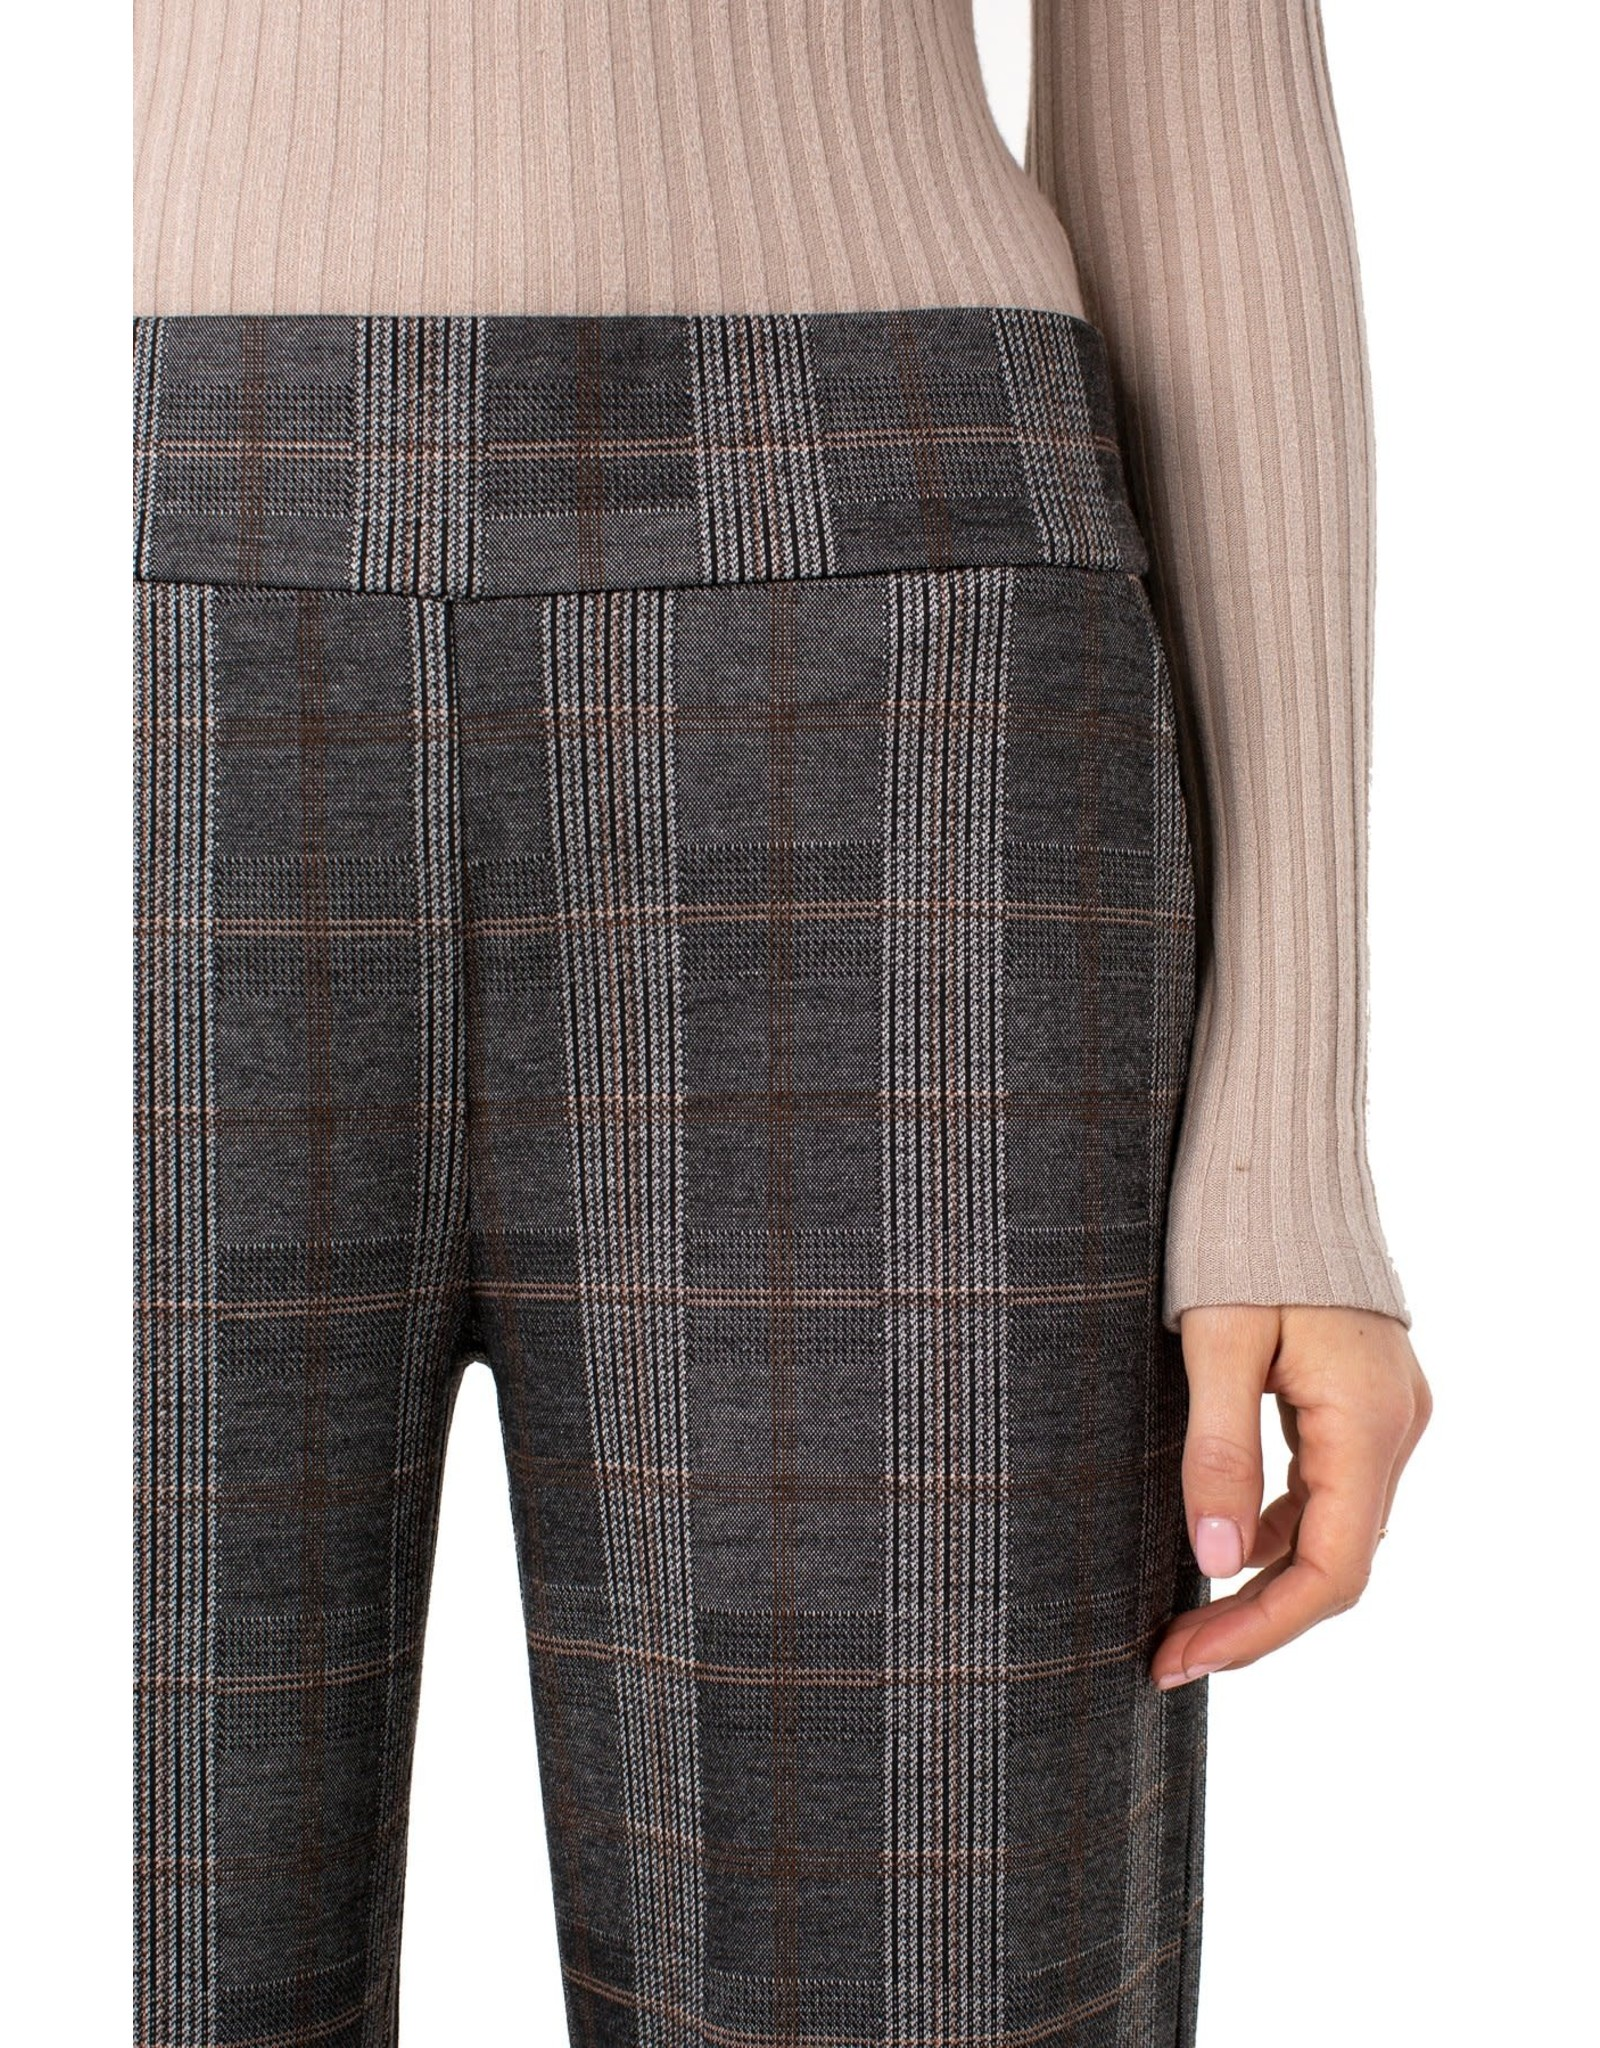 Liverpool Liverpool - Mabel pull-on wide leg (cream/tan/blk check)